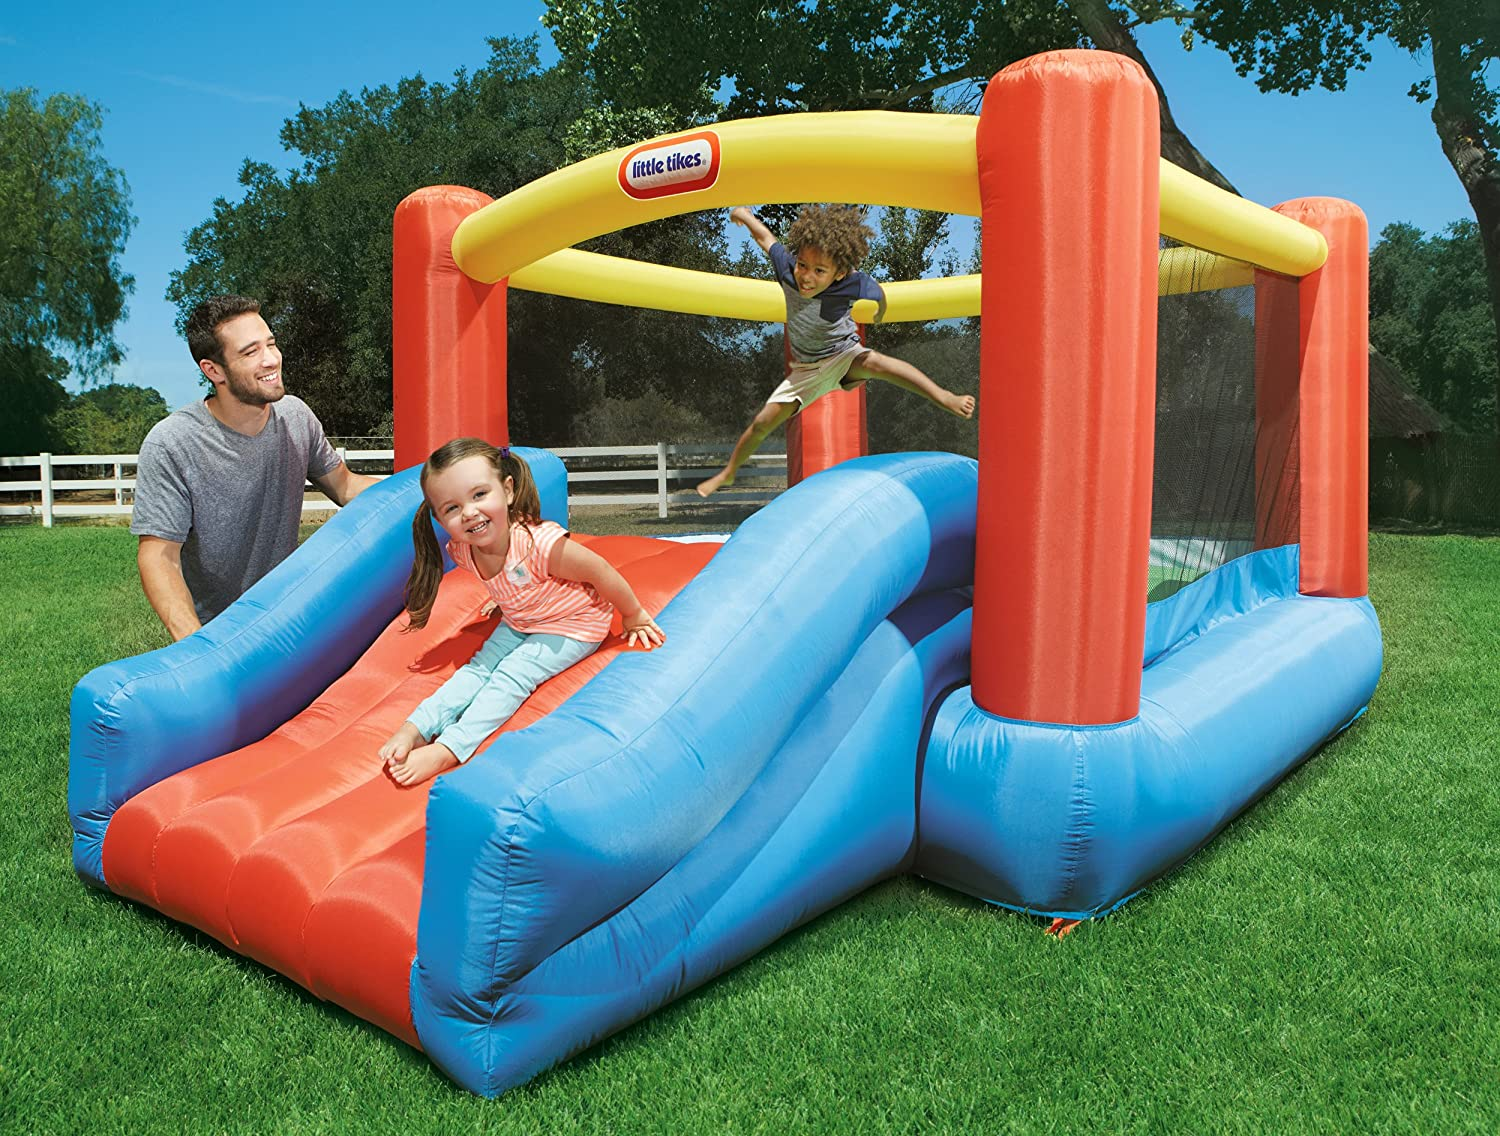 An Image of Little Tikes Junior Jump N Slide Bouncer